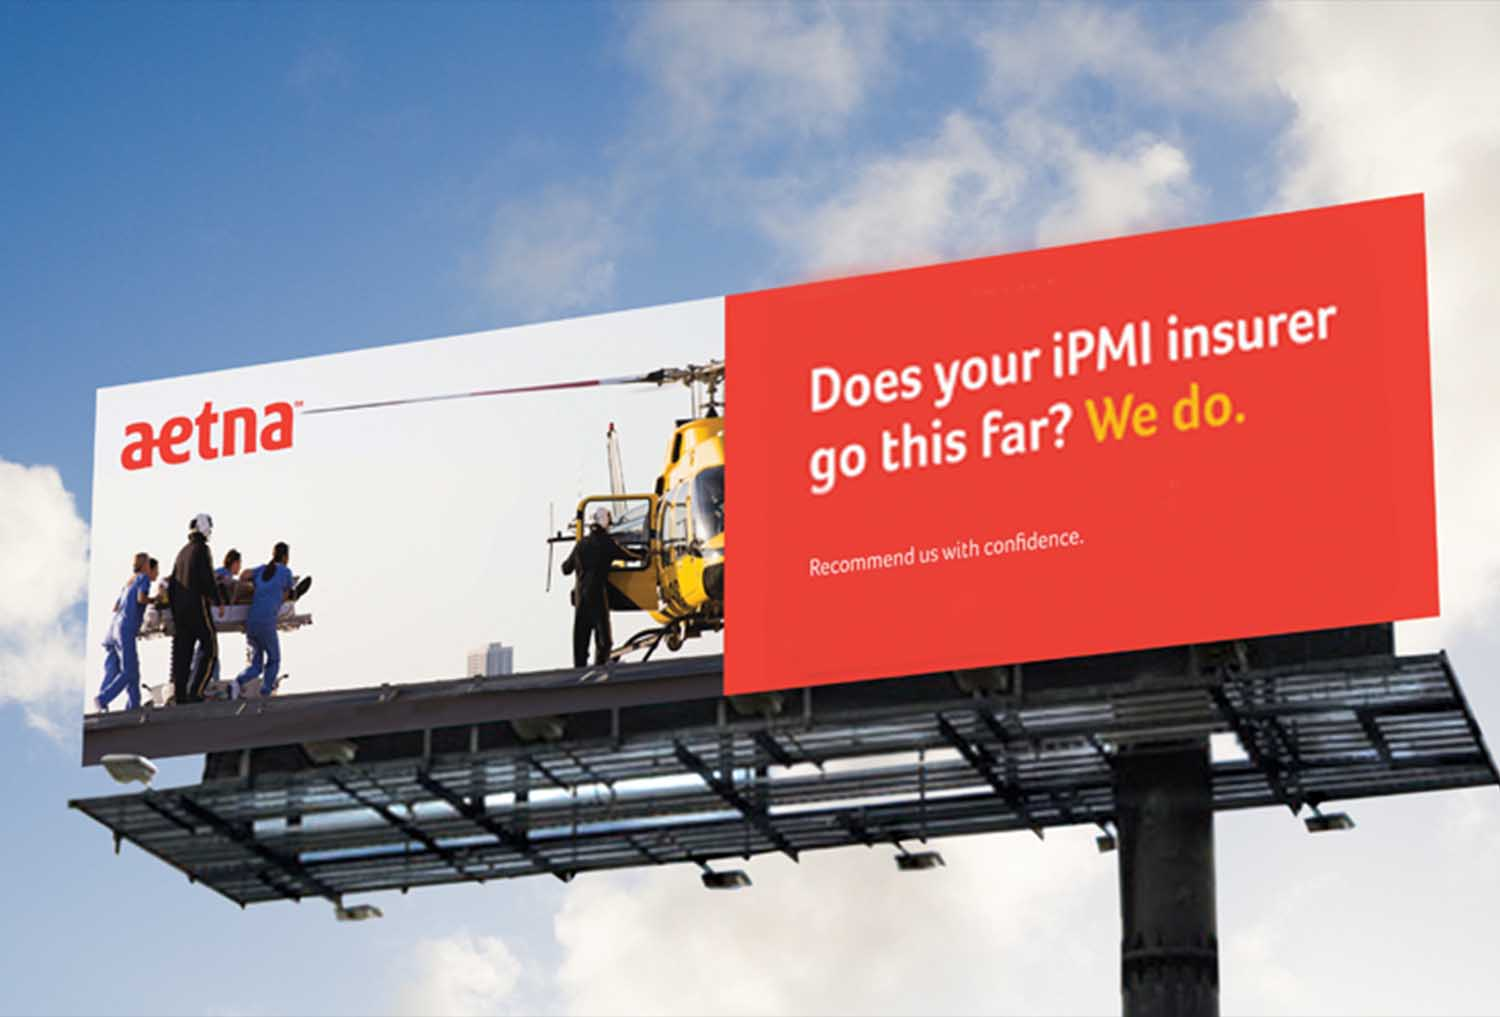 AETNA-billboard-advertising-campaign Aetna